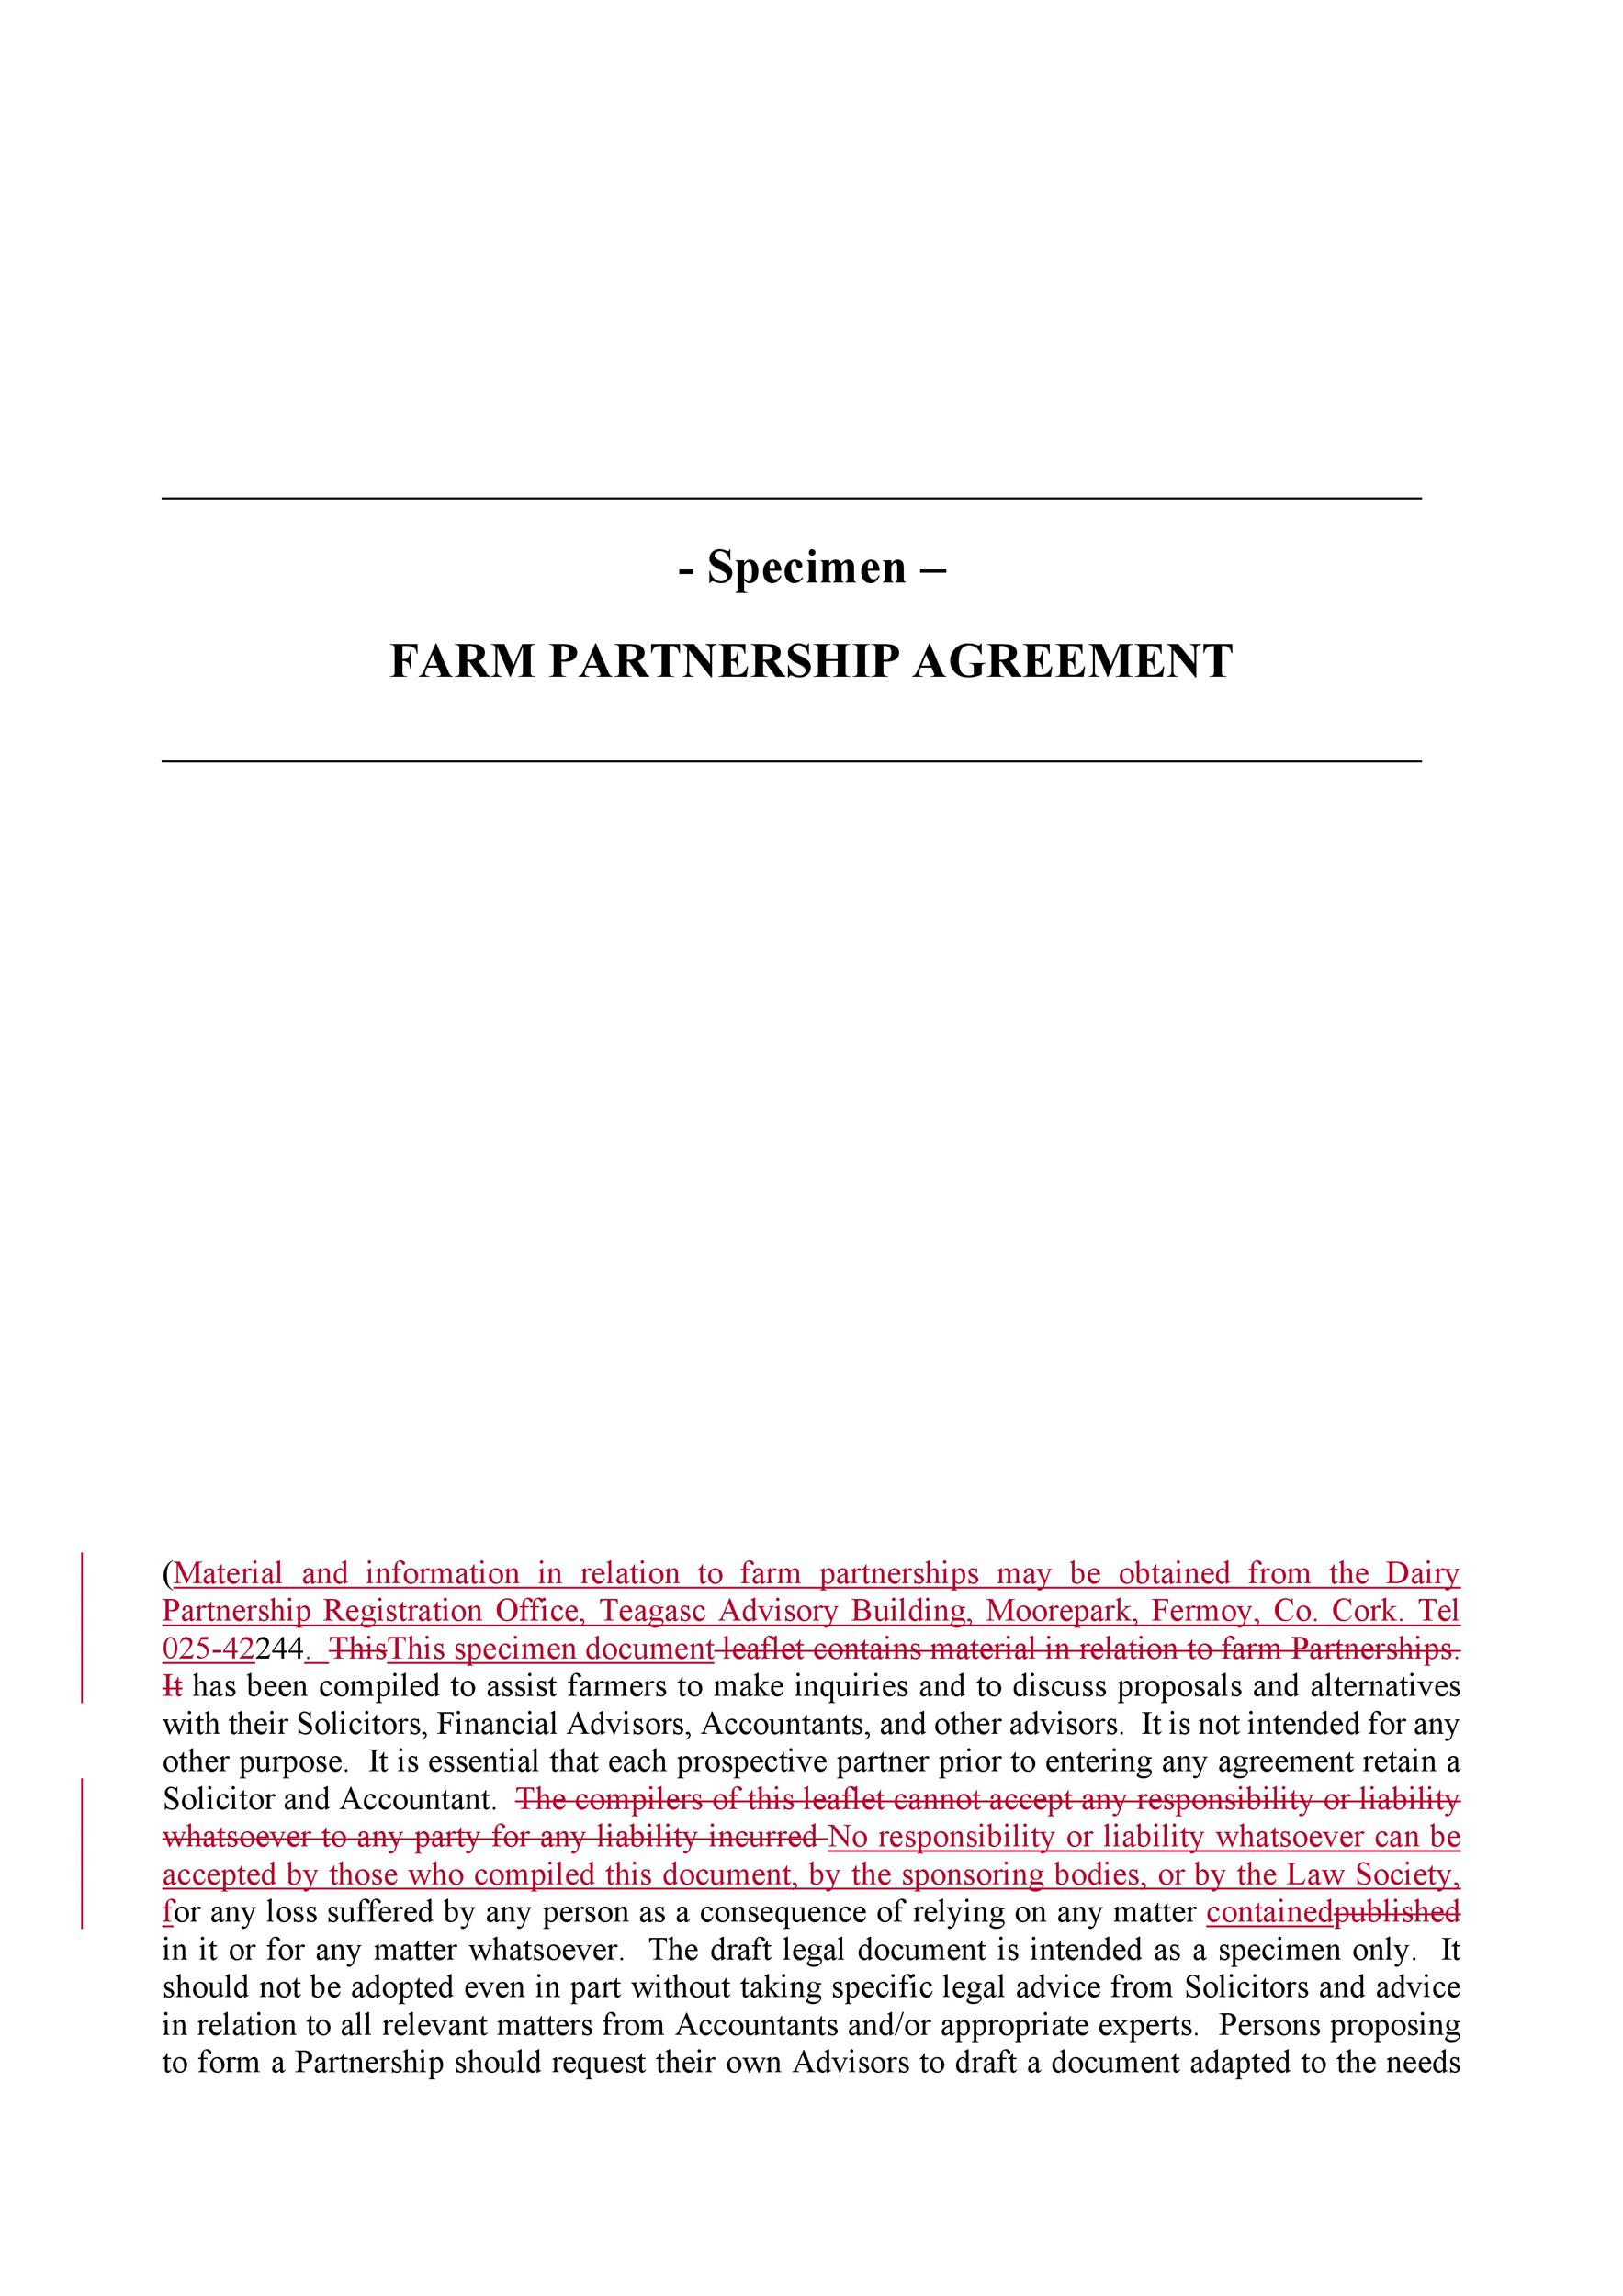 Partnership Agreement Template 37